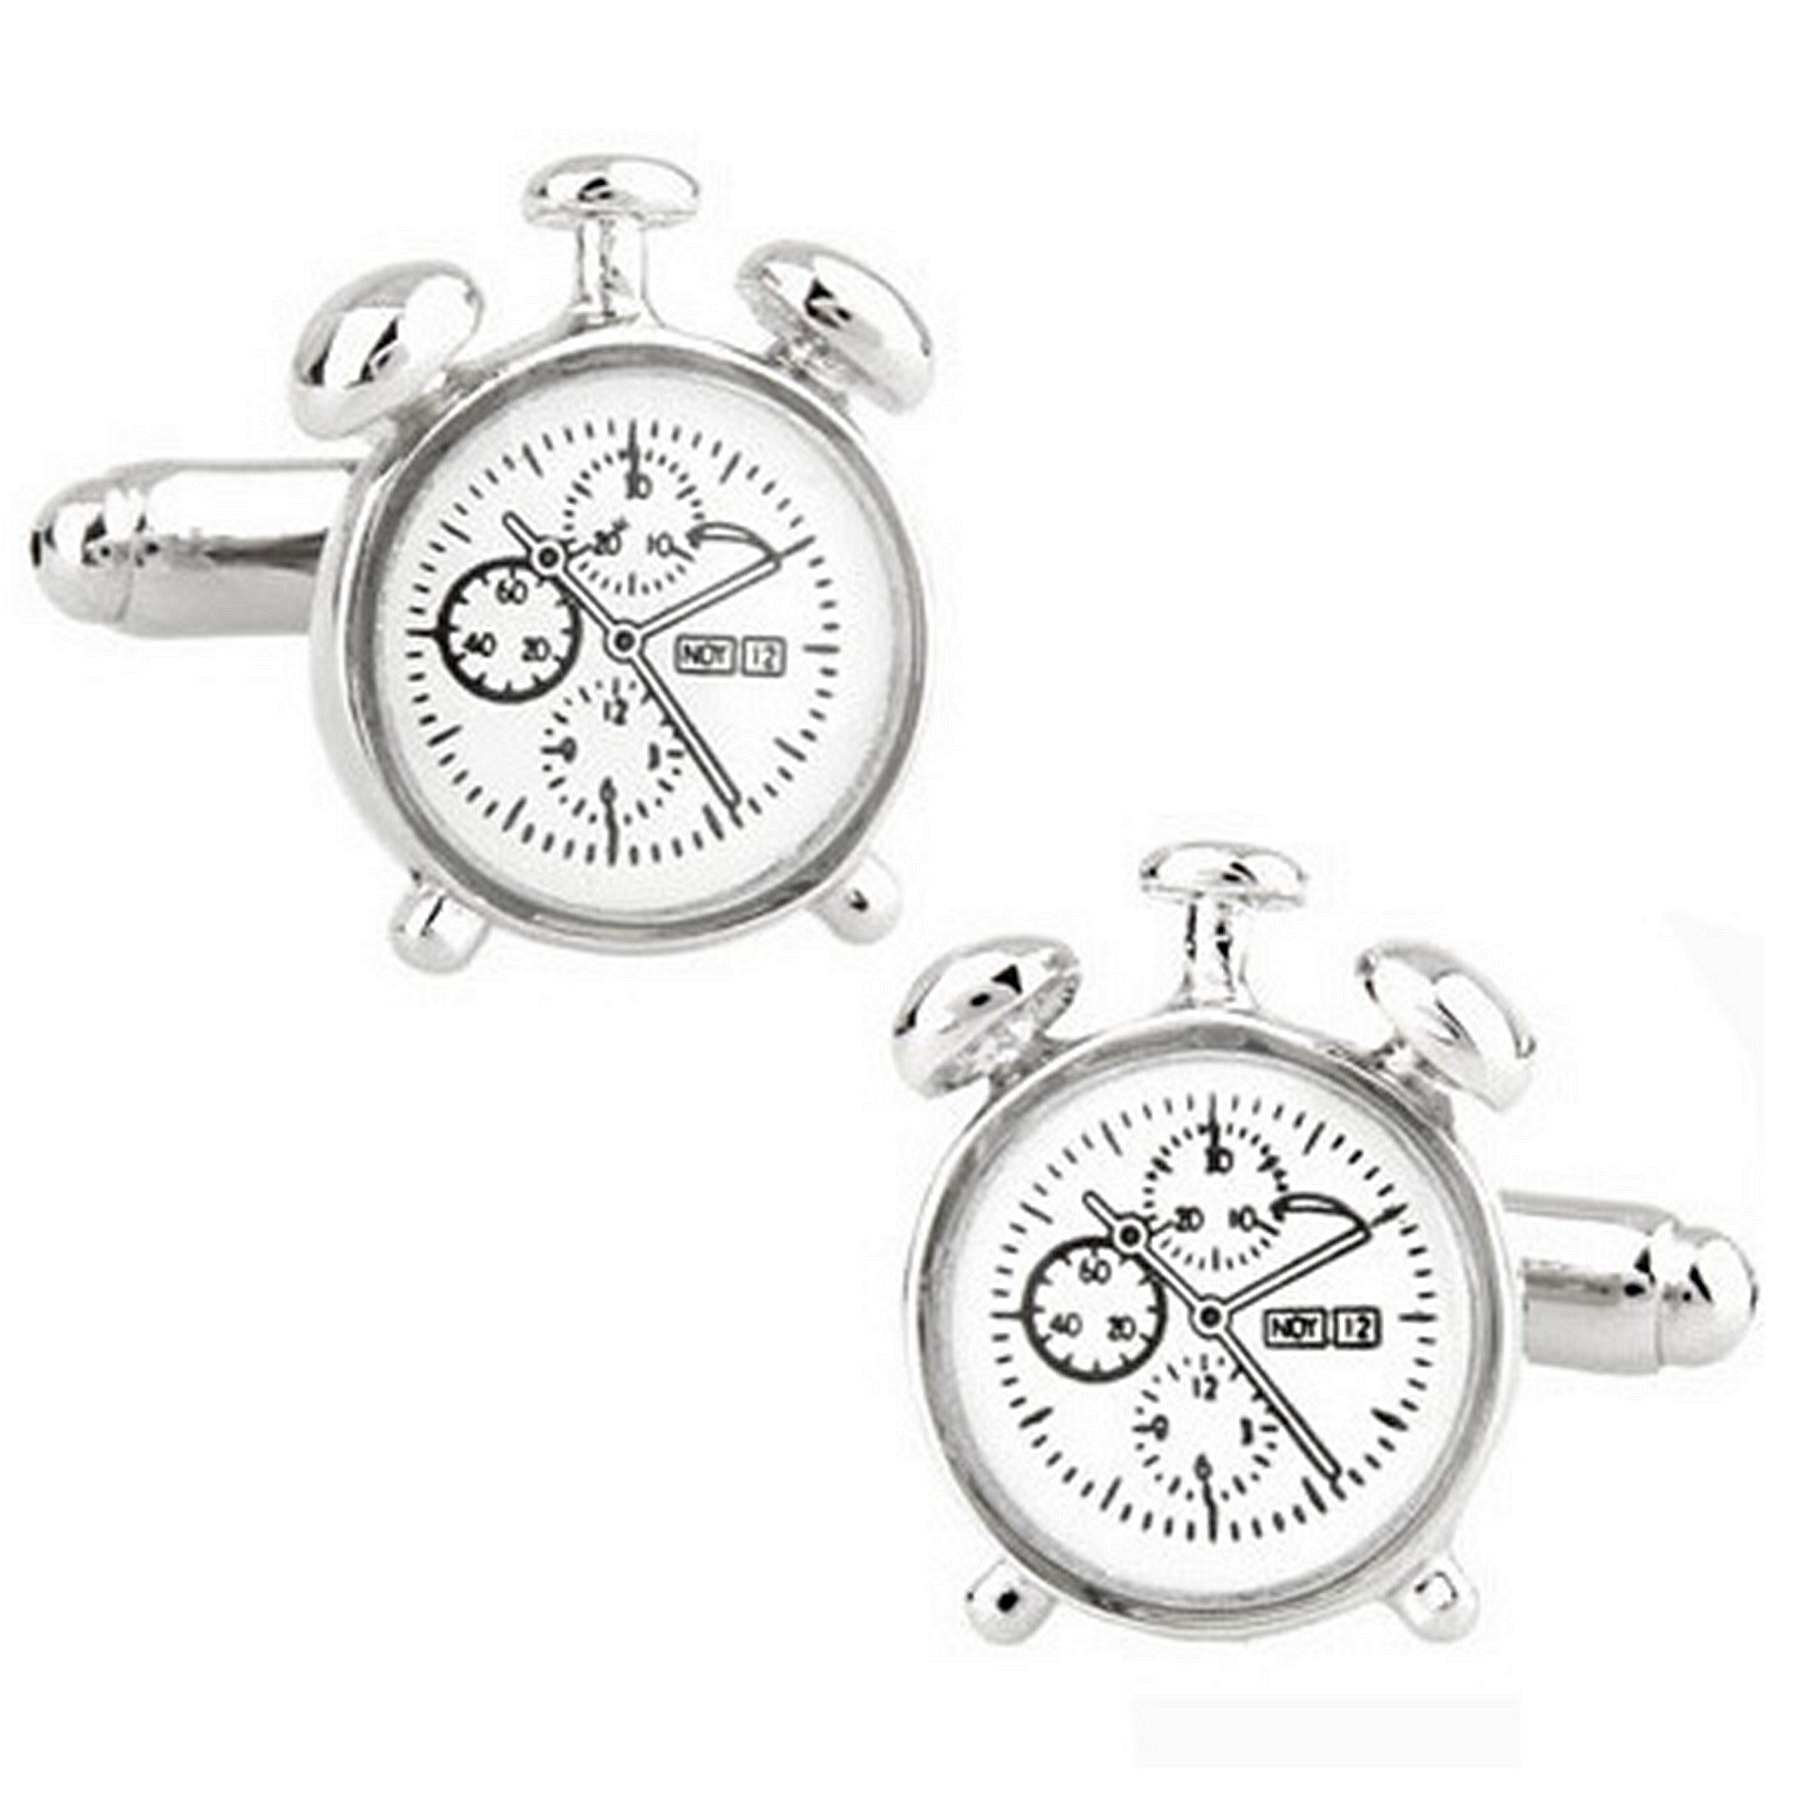 RXBC2011 Men's Alarm Clock French Shirts Cufflinks 1 Pair Set